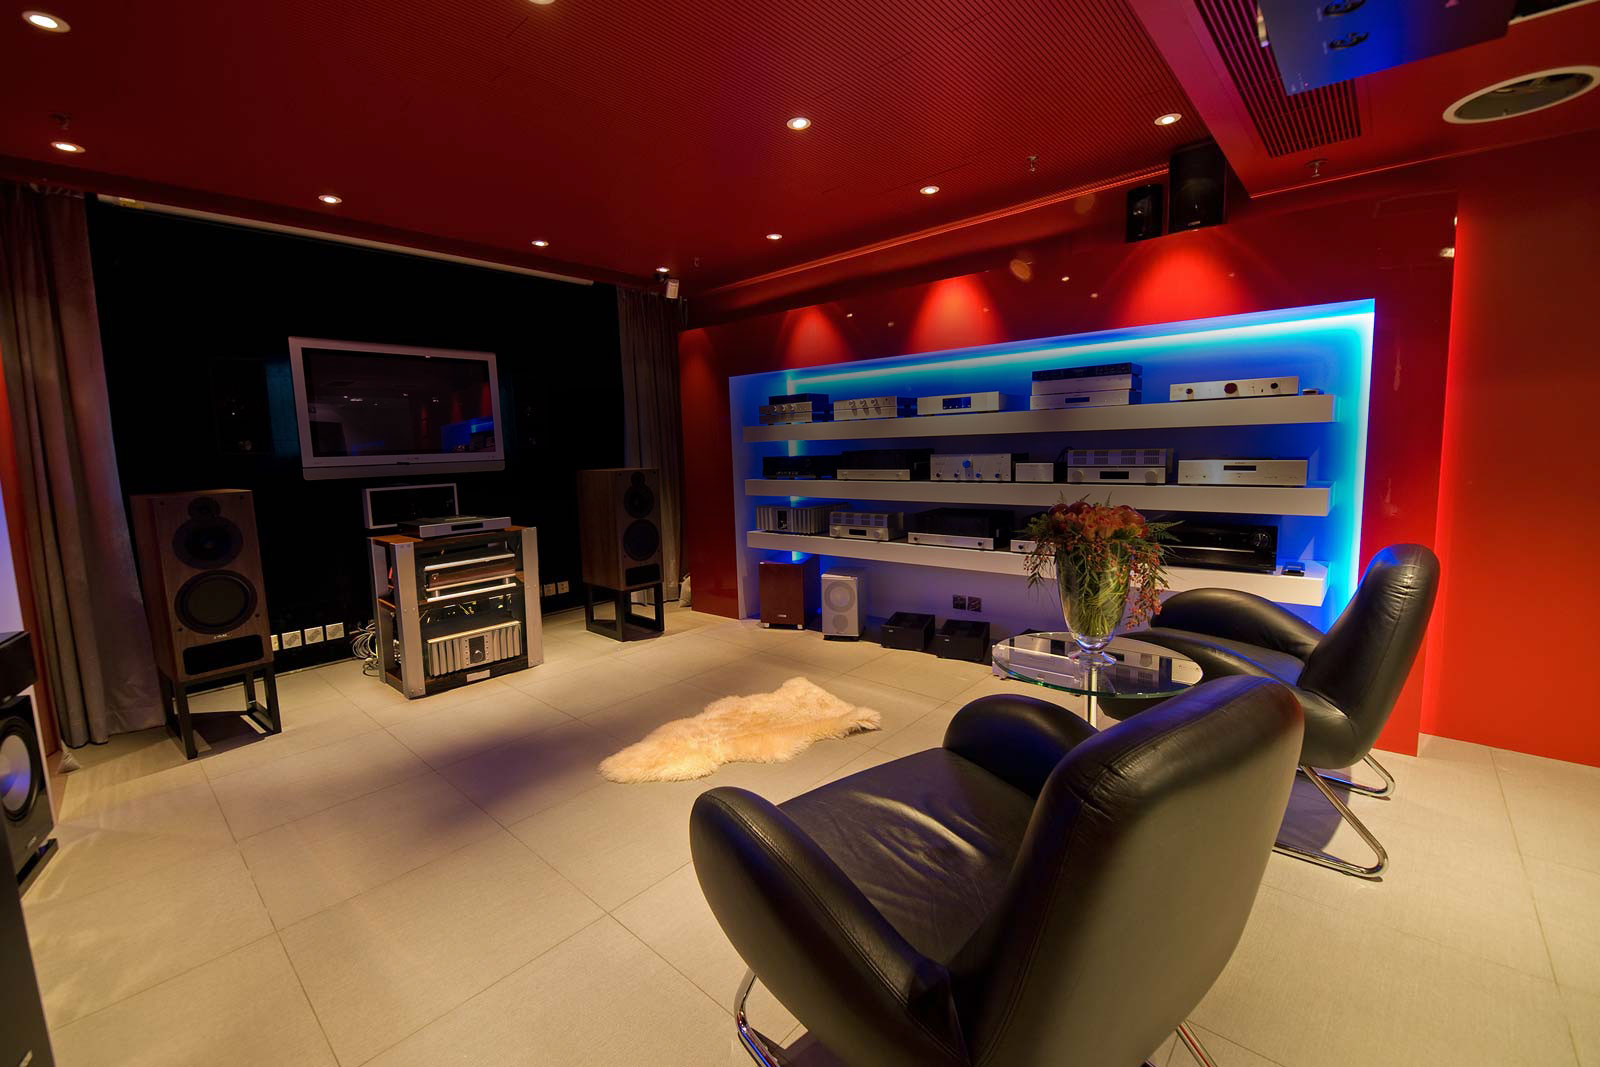 The Multimedia Room was designed as a versatile demo venue for the enjoyment of traditional as well as avant-garde entertainment in today's homes.